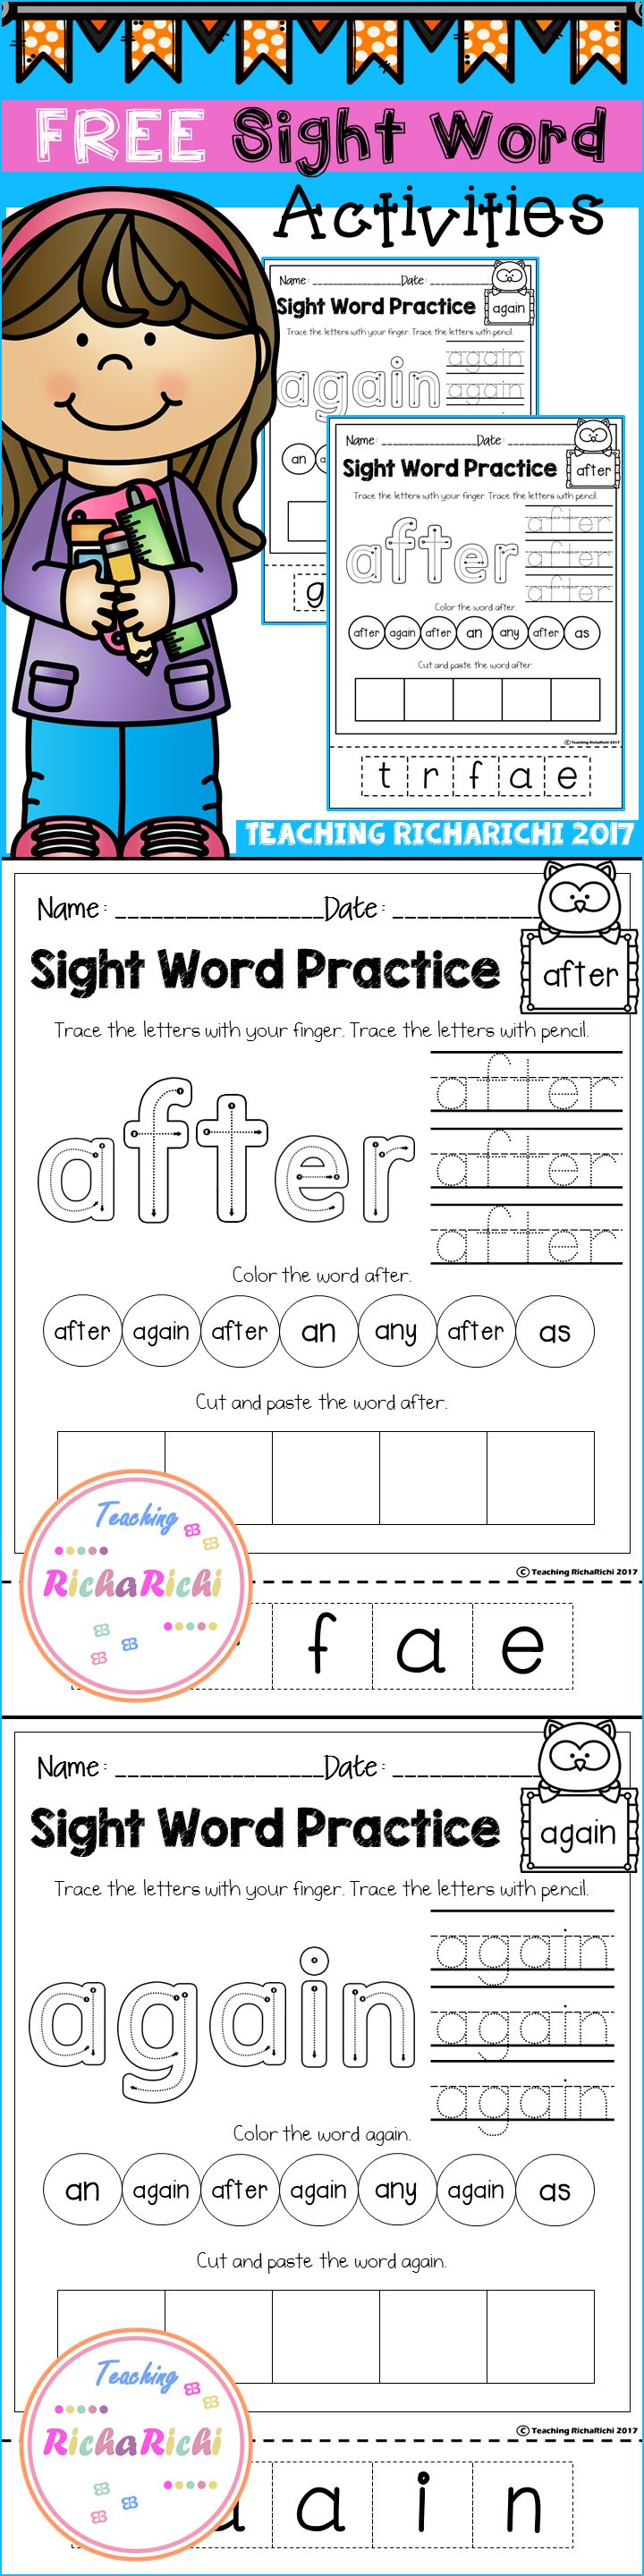 worksheet Free Printable Kindergarten Sight Word Worksheets 10 best ideas about sight word worksheets on pinterest freebies free kindergarten activities pre k first grade activitiessight word